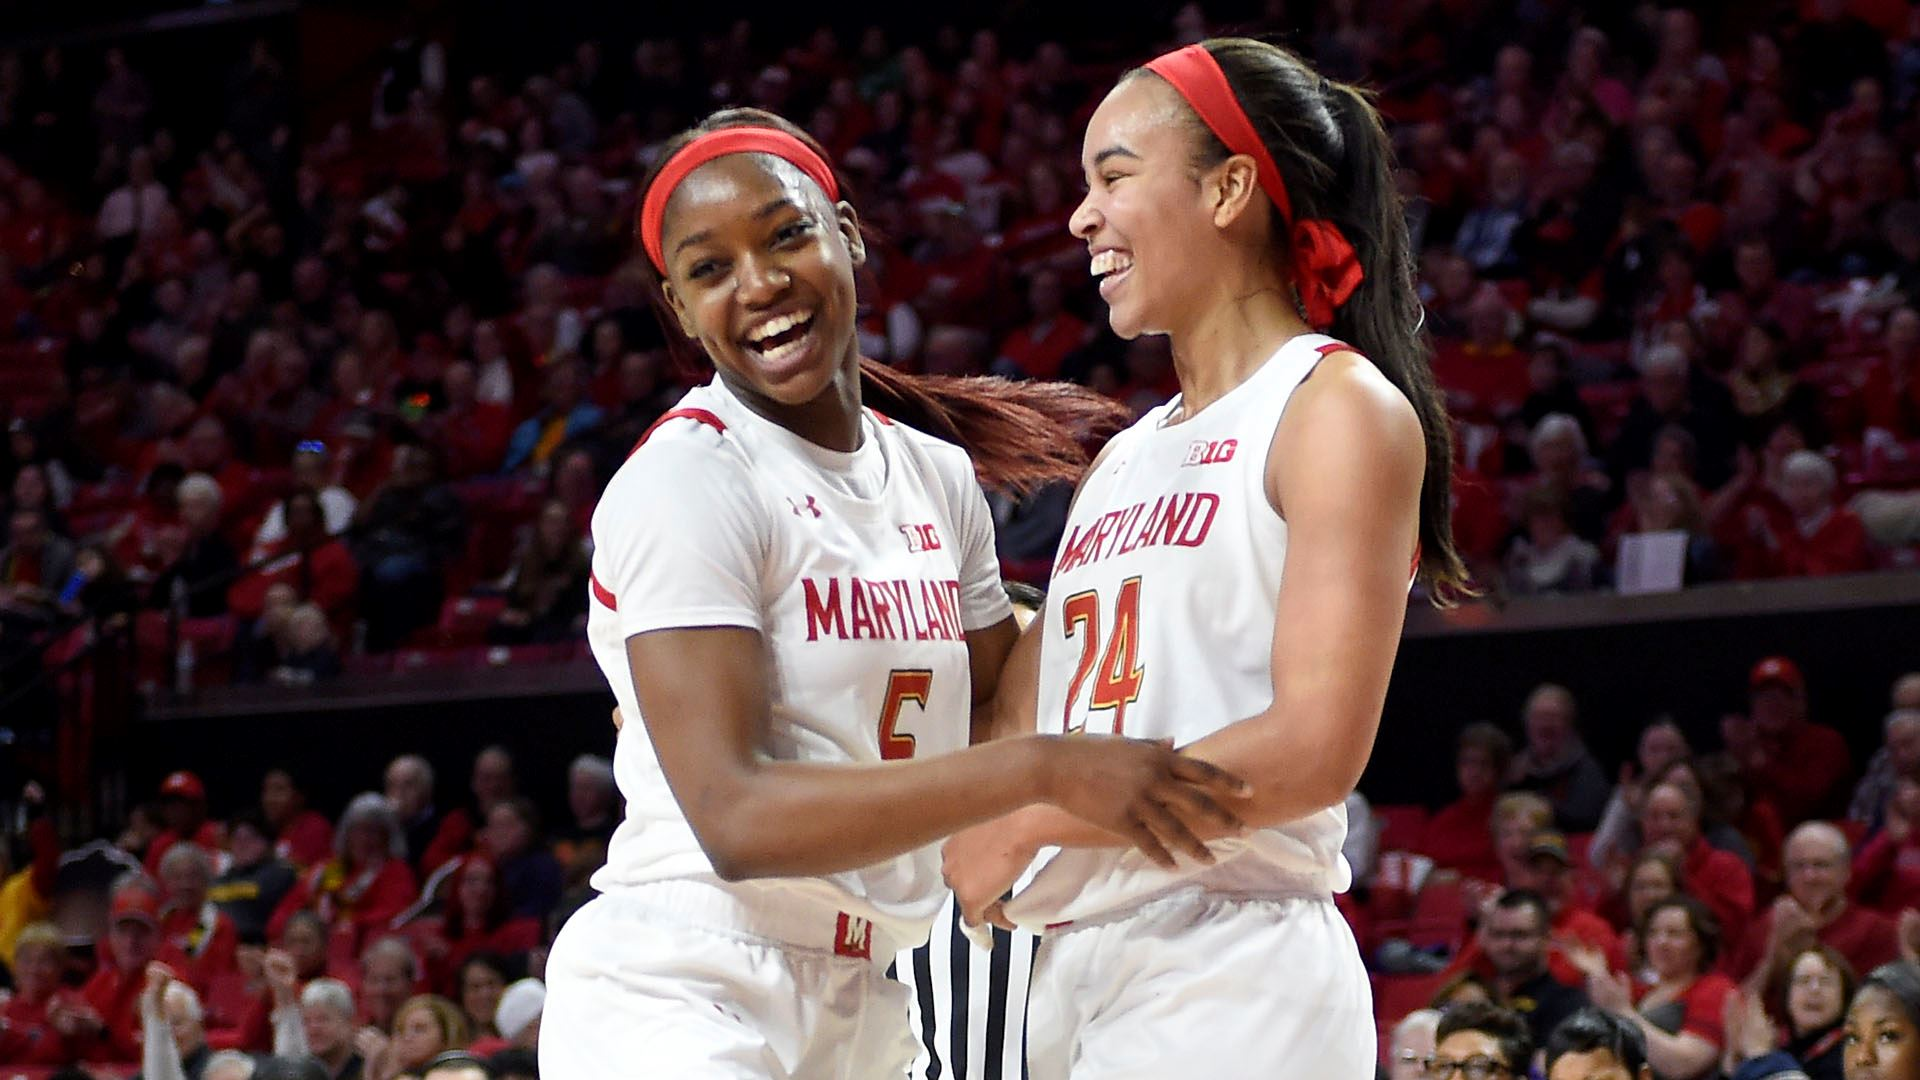 Maryland rolls over Rutgers 79-50 for ninth straight victory